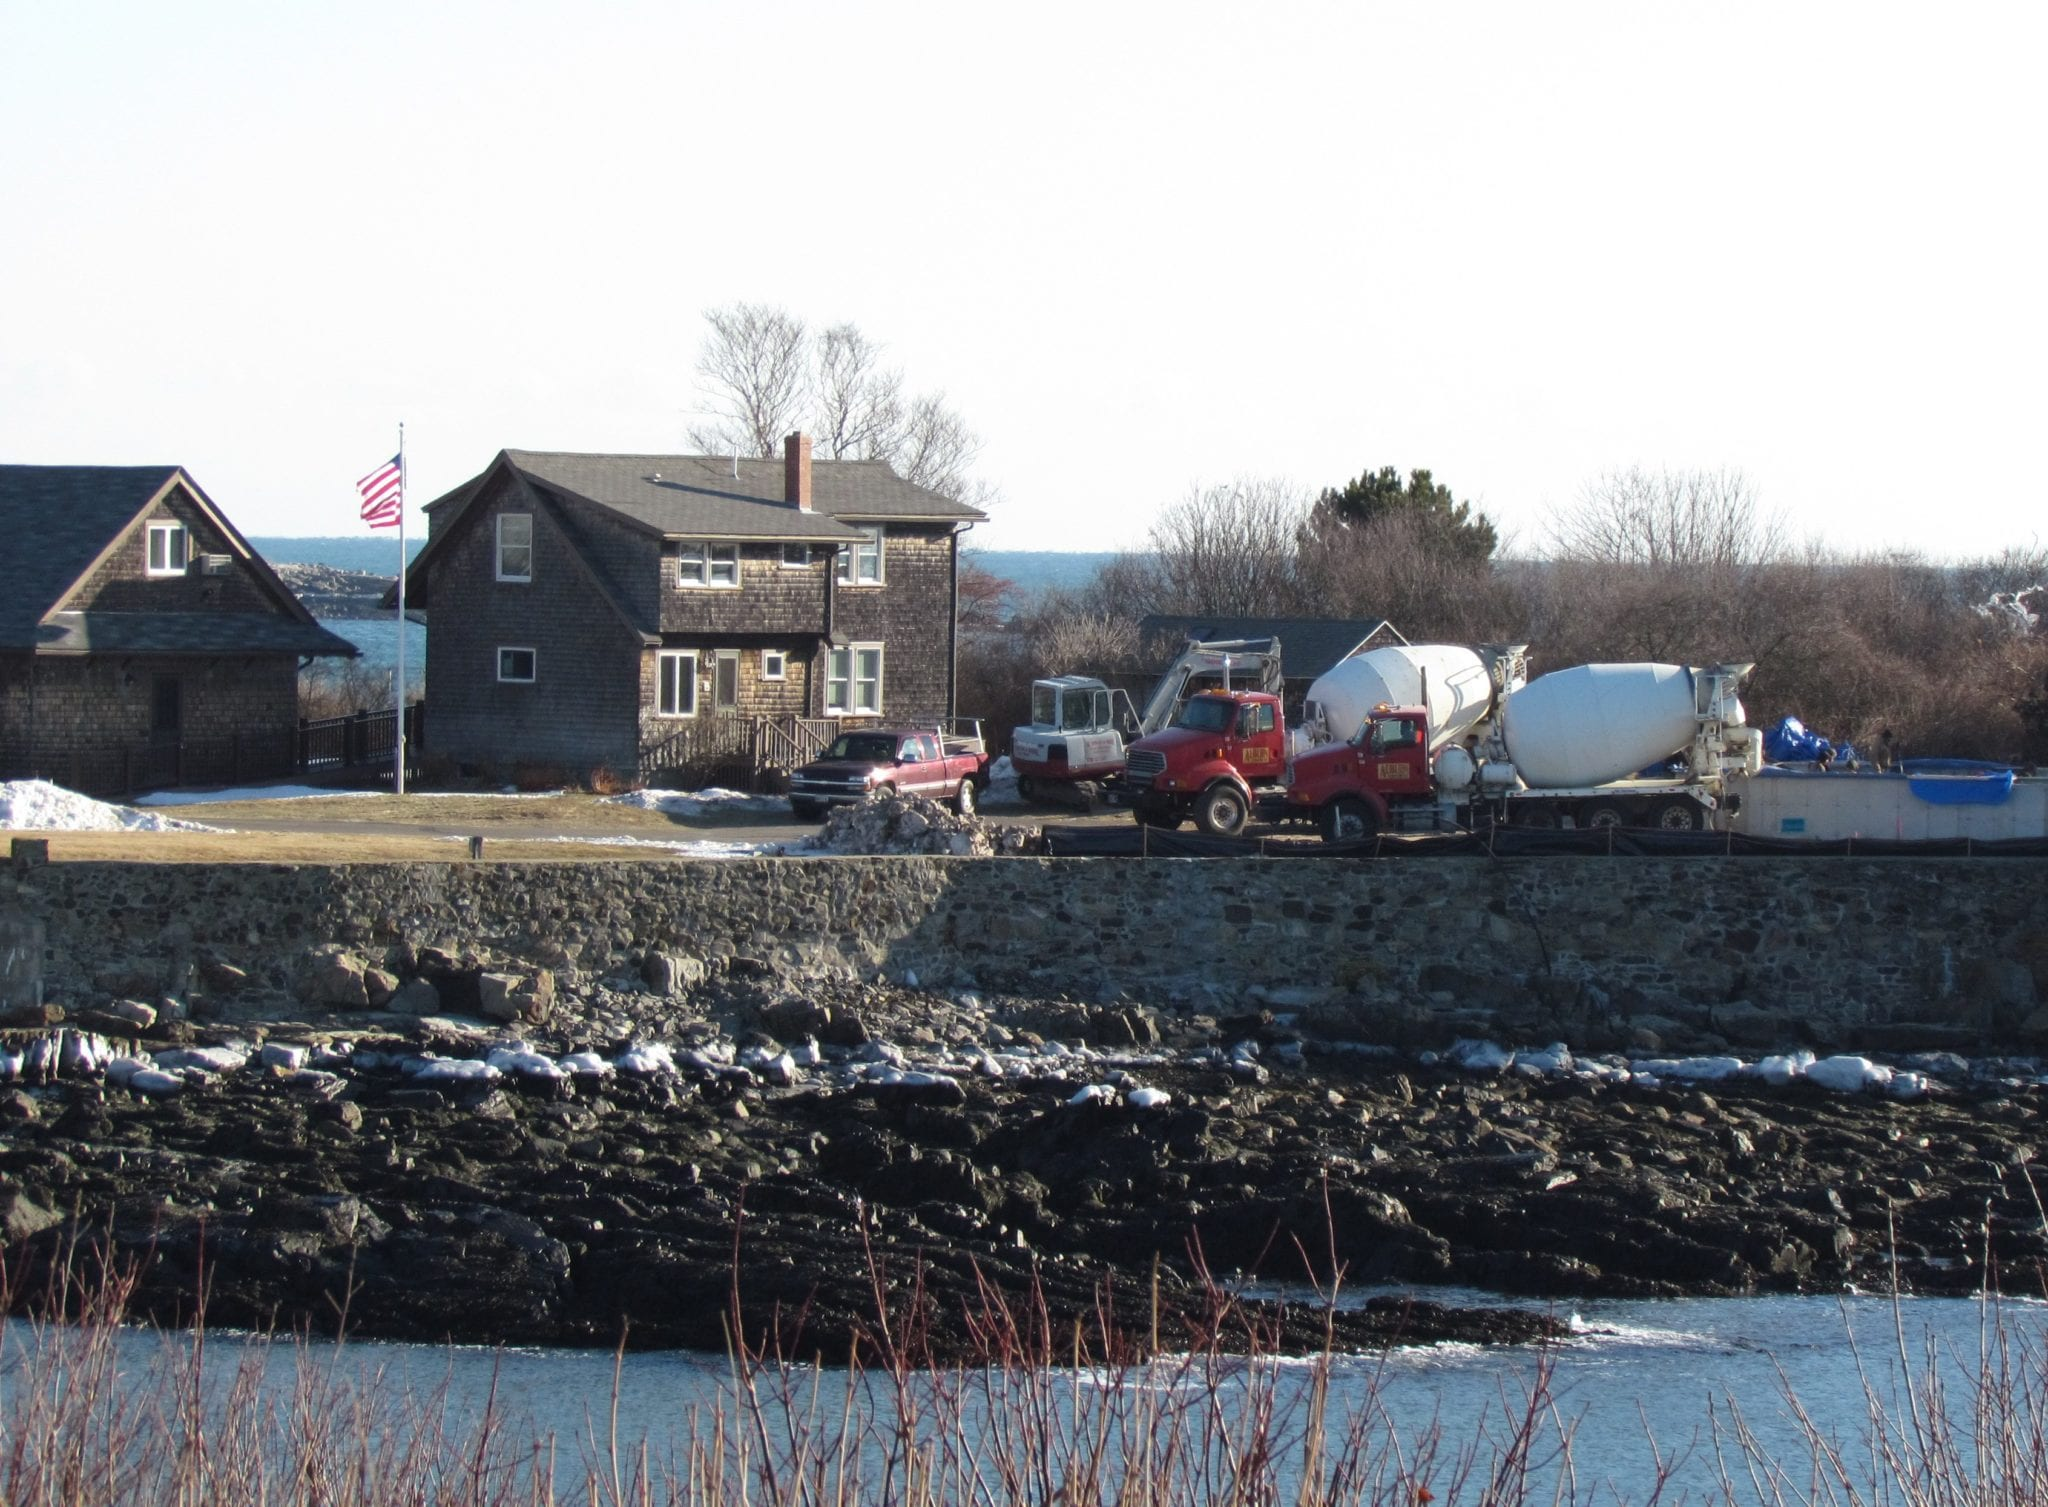 Walker Point in Kennebunk, Maine